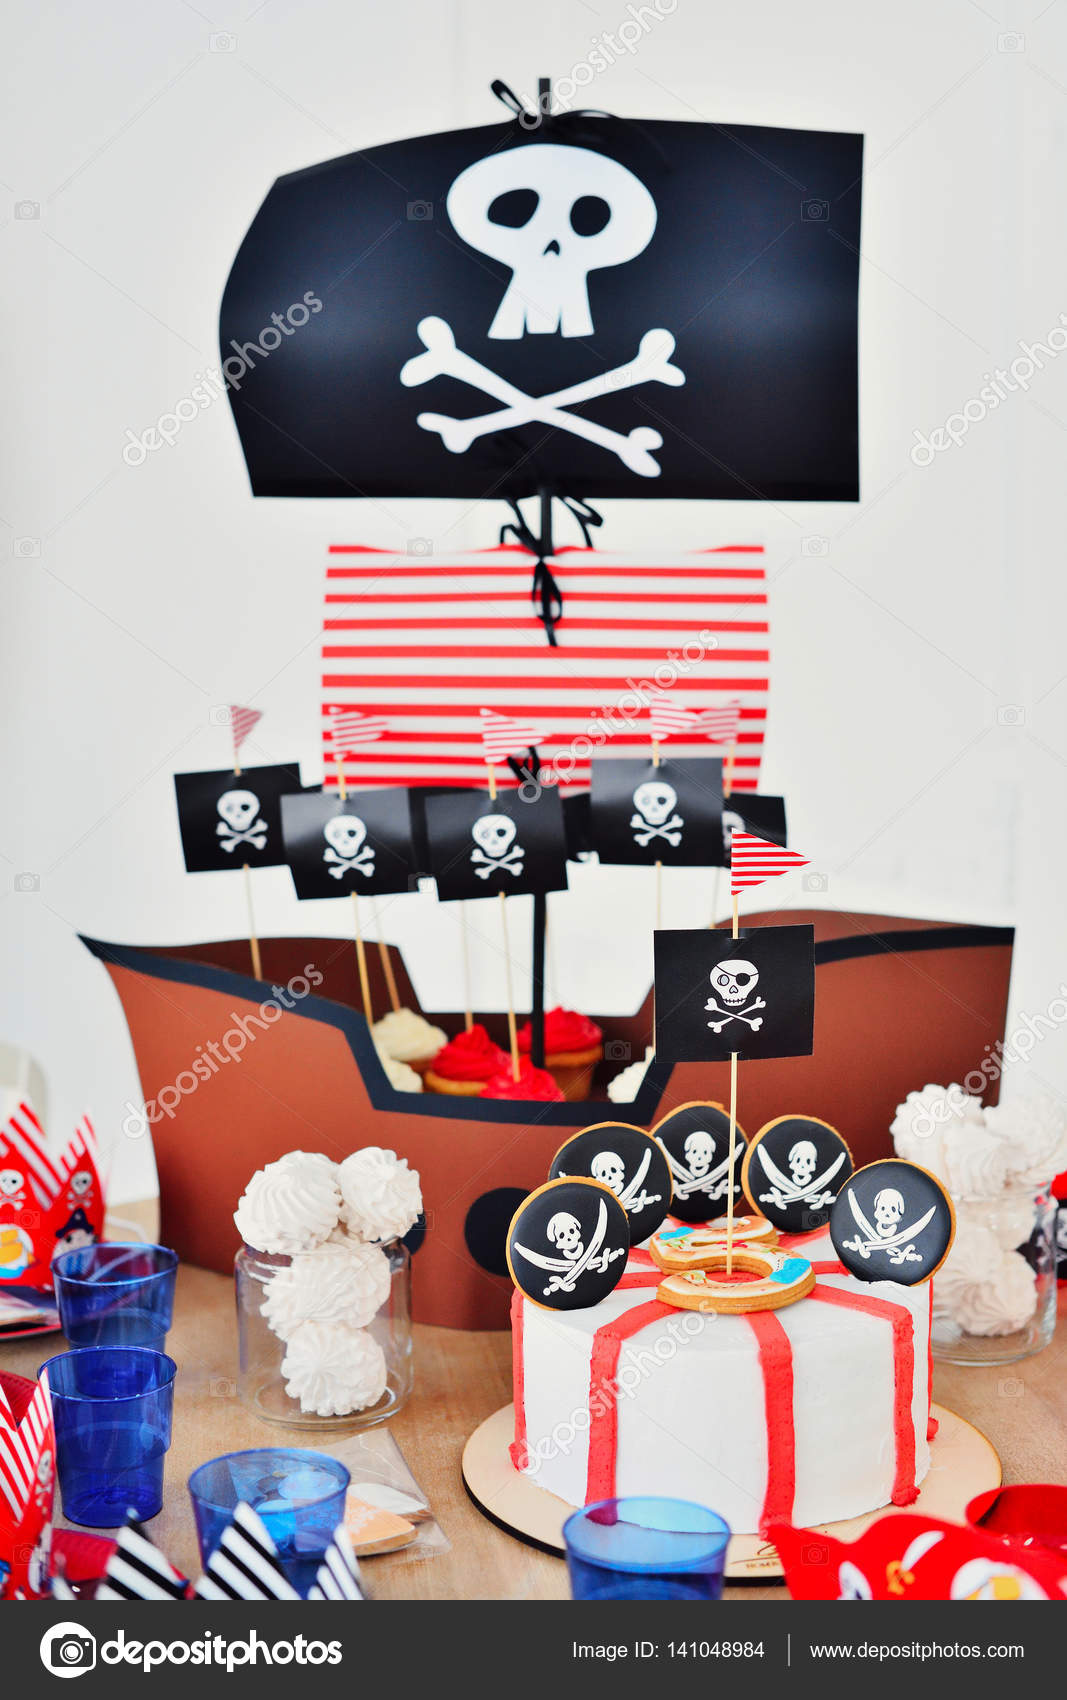 Pirate Party Decorations For Birthday Stock Photo C Nosenkoos